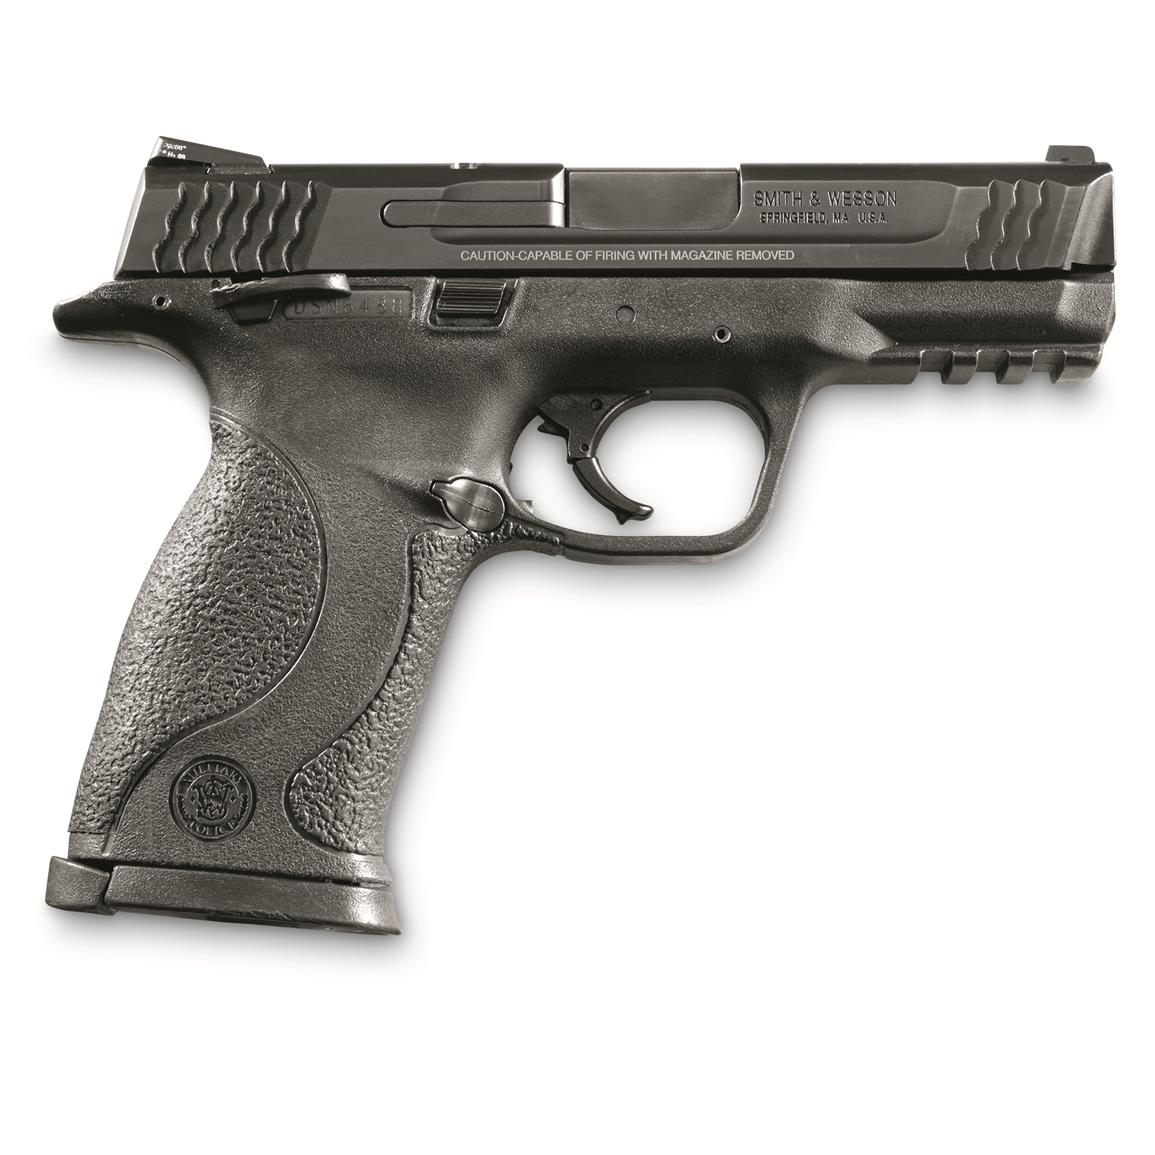 "Smith & Wesson M&P45 Mid-Size, Semi-Automatic, .45 ACP, 4"" Barrel, 10+1 Rounds, Used"